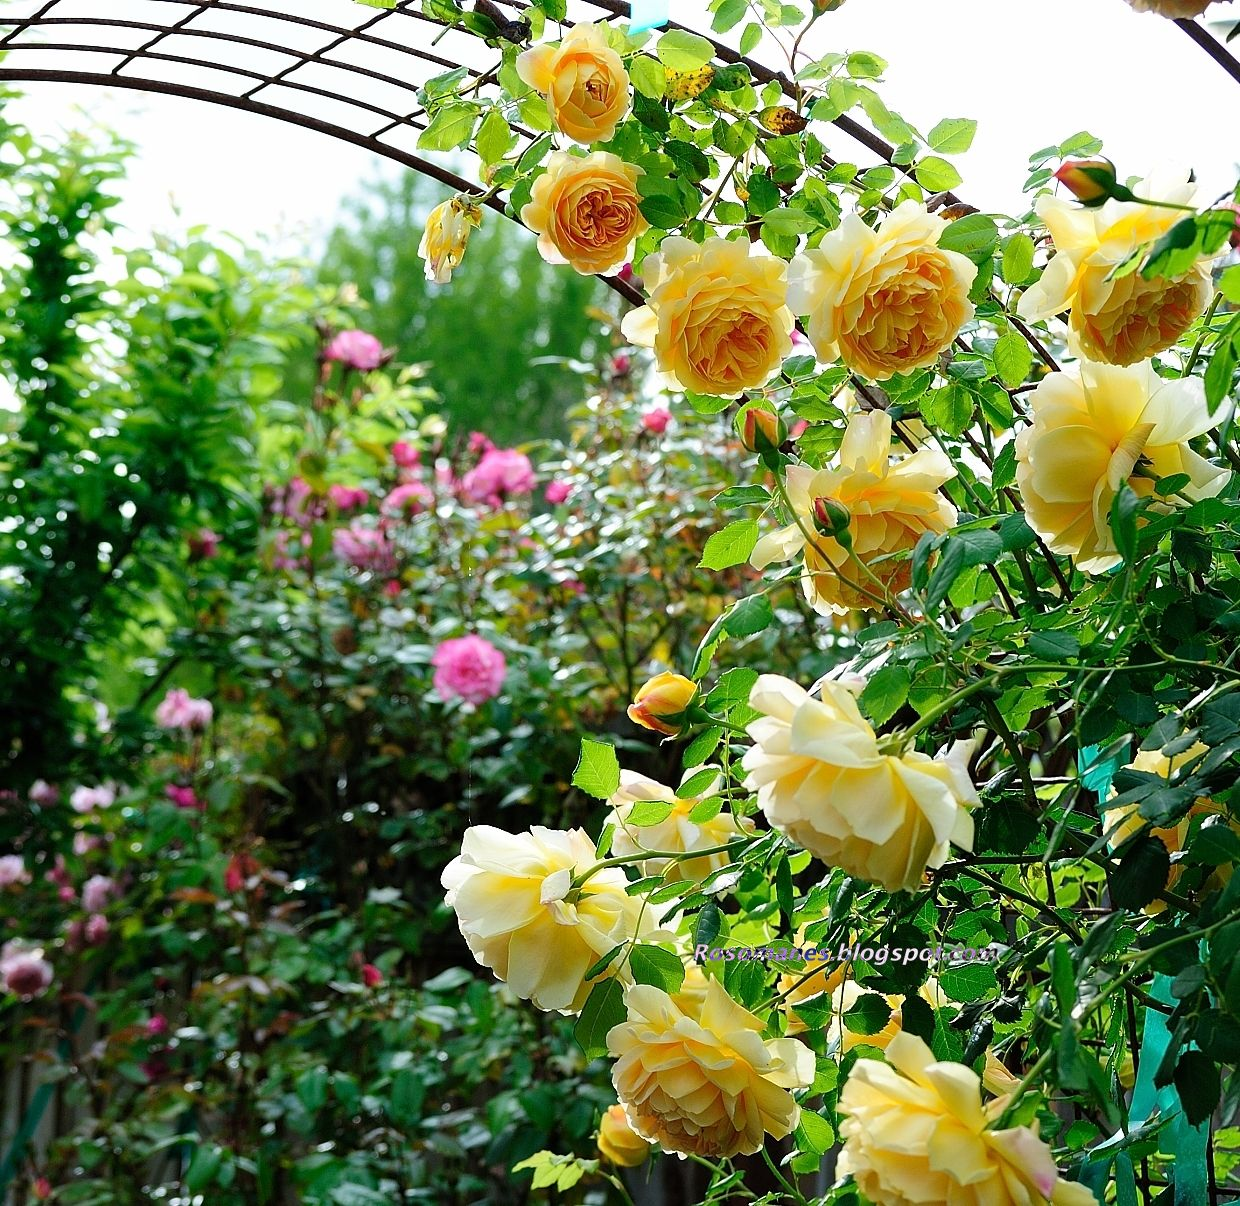 A Rose Is A Rose Golden Celebration Rose Garden Design Climbing Roses Cottage Garden